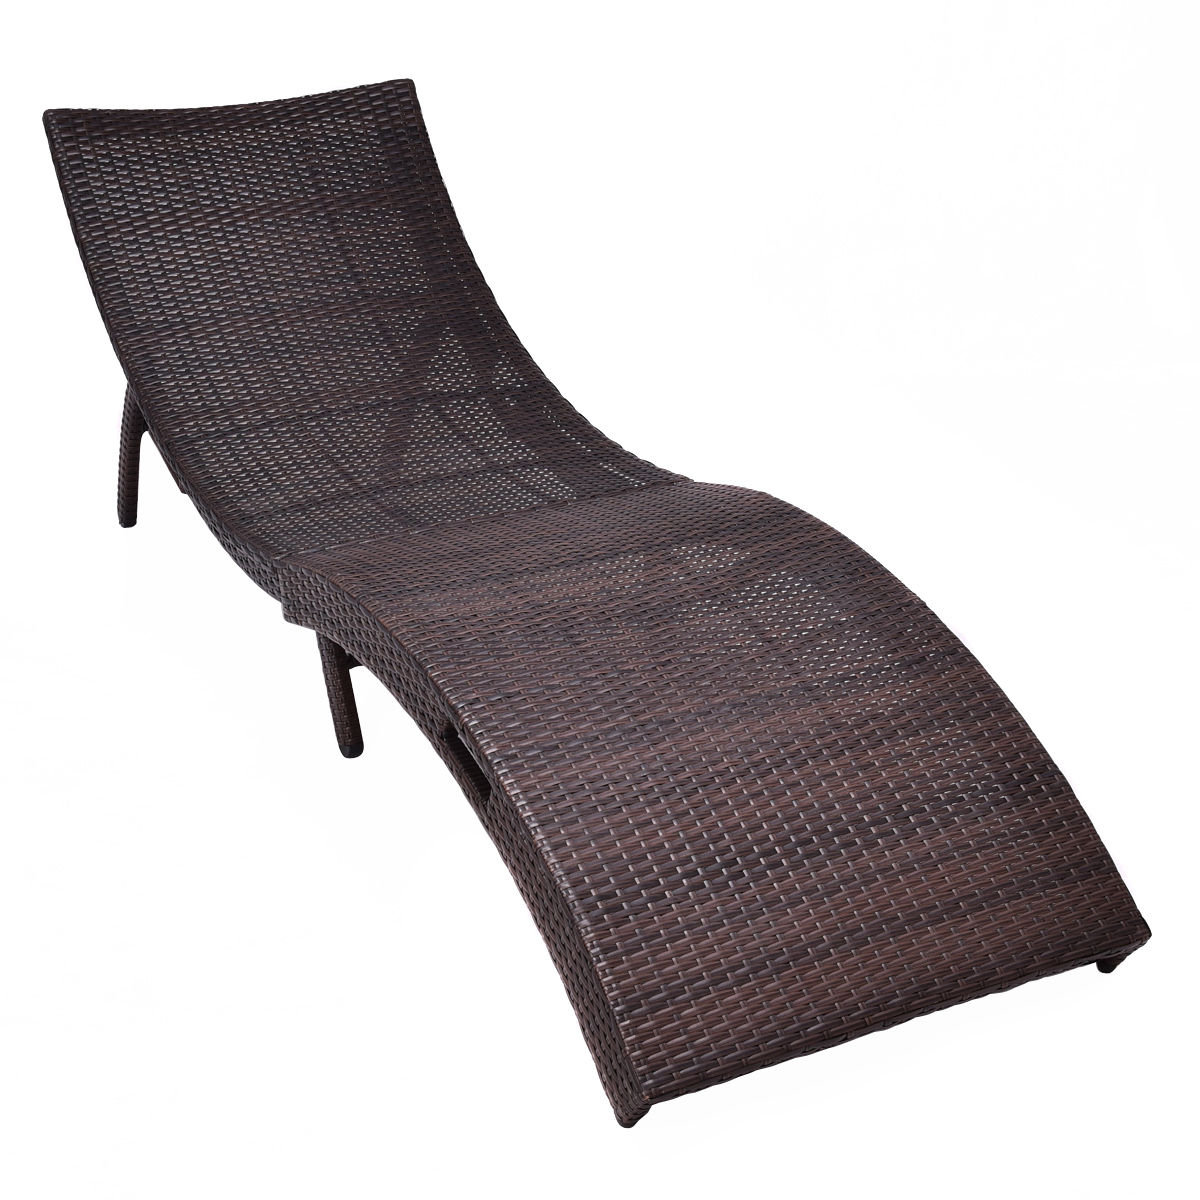 Fashionable Curved Folding Chaise Loungers Intended For Ghp 440lbs Capacity Curved Brown Folding Rattan Patio Poolside Chaise Lounge Chair (View 17 of 25)